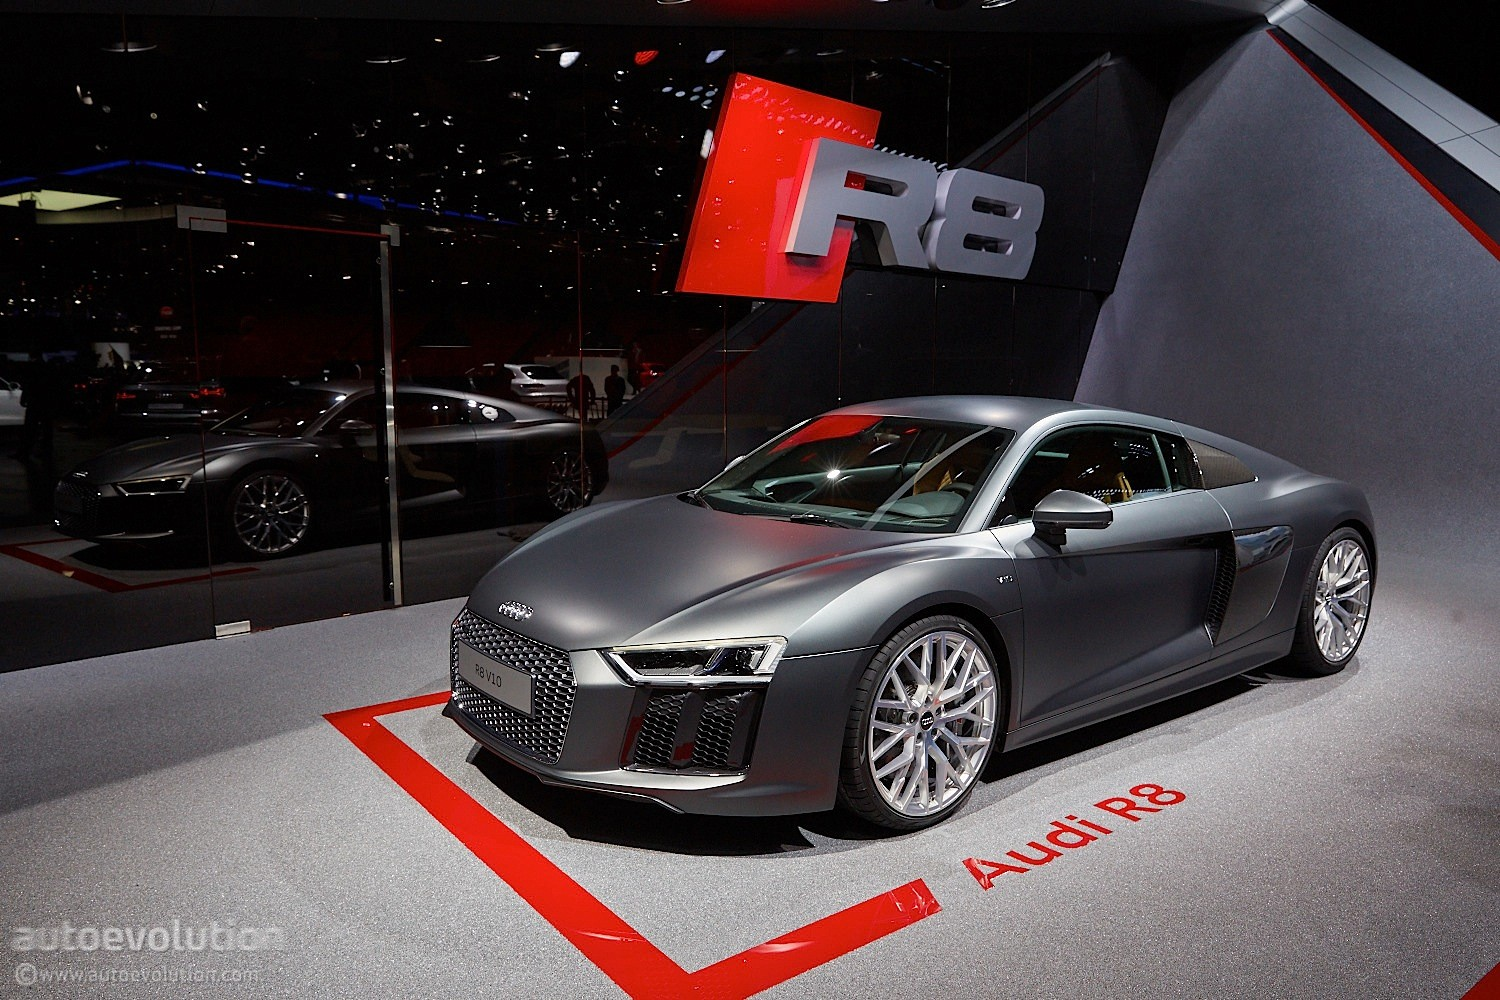 2016 audi r8 v10 reveals the next era of german supercars in geneva video live photos. Black Bedroom Furniture Sets. Home Design Ideas